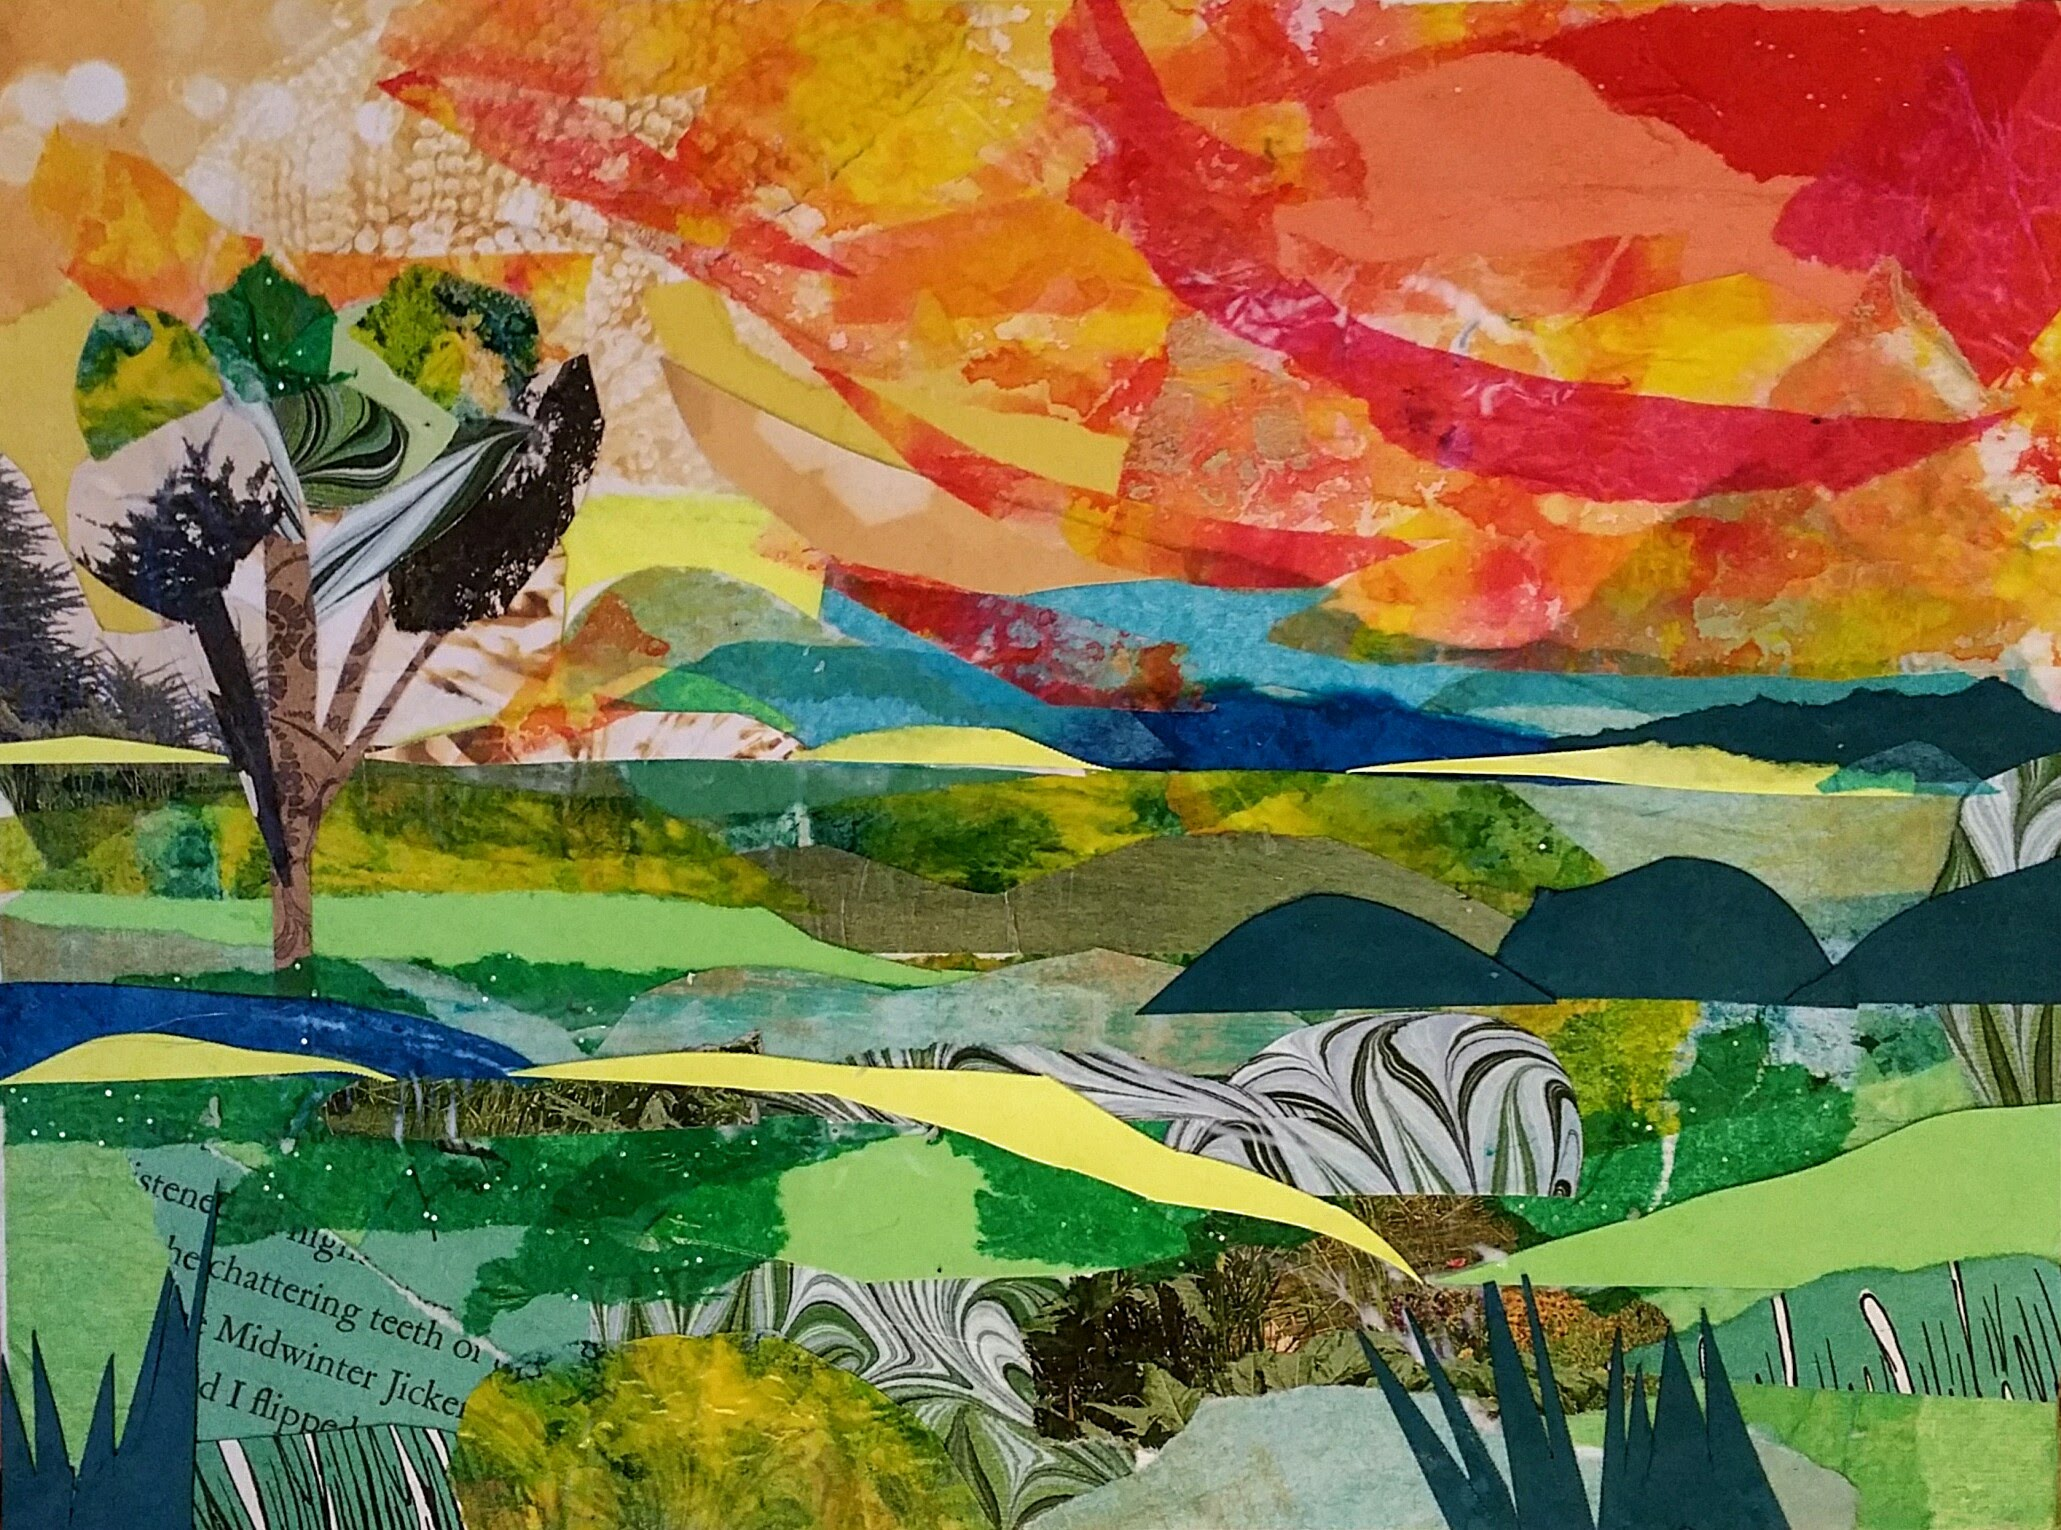 Drawn scenic collage work Making Landscape a YouTube Collage